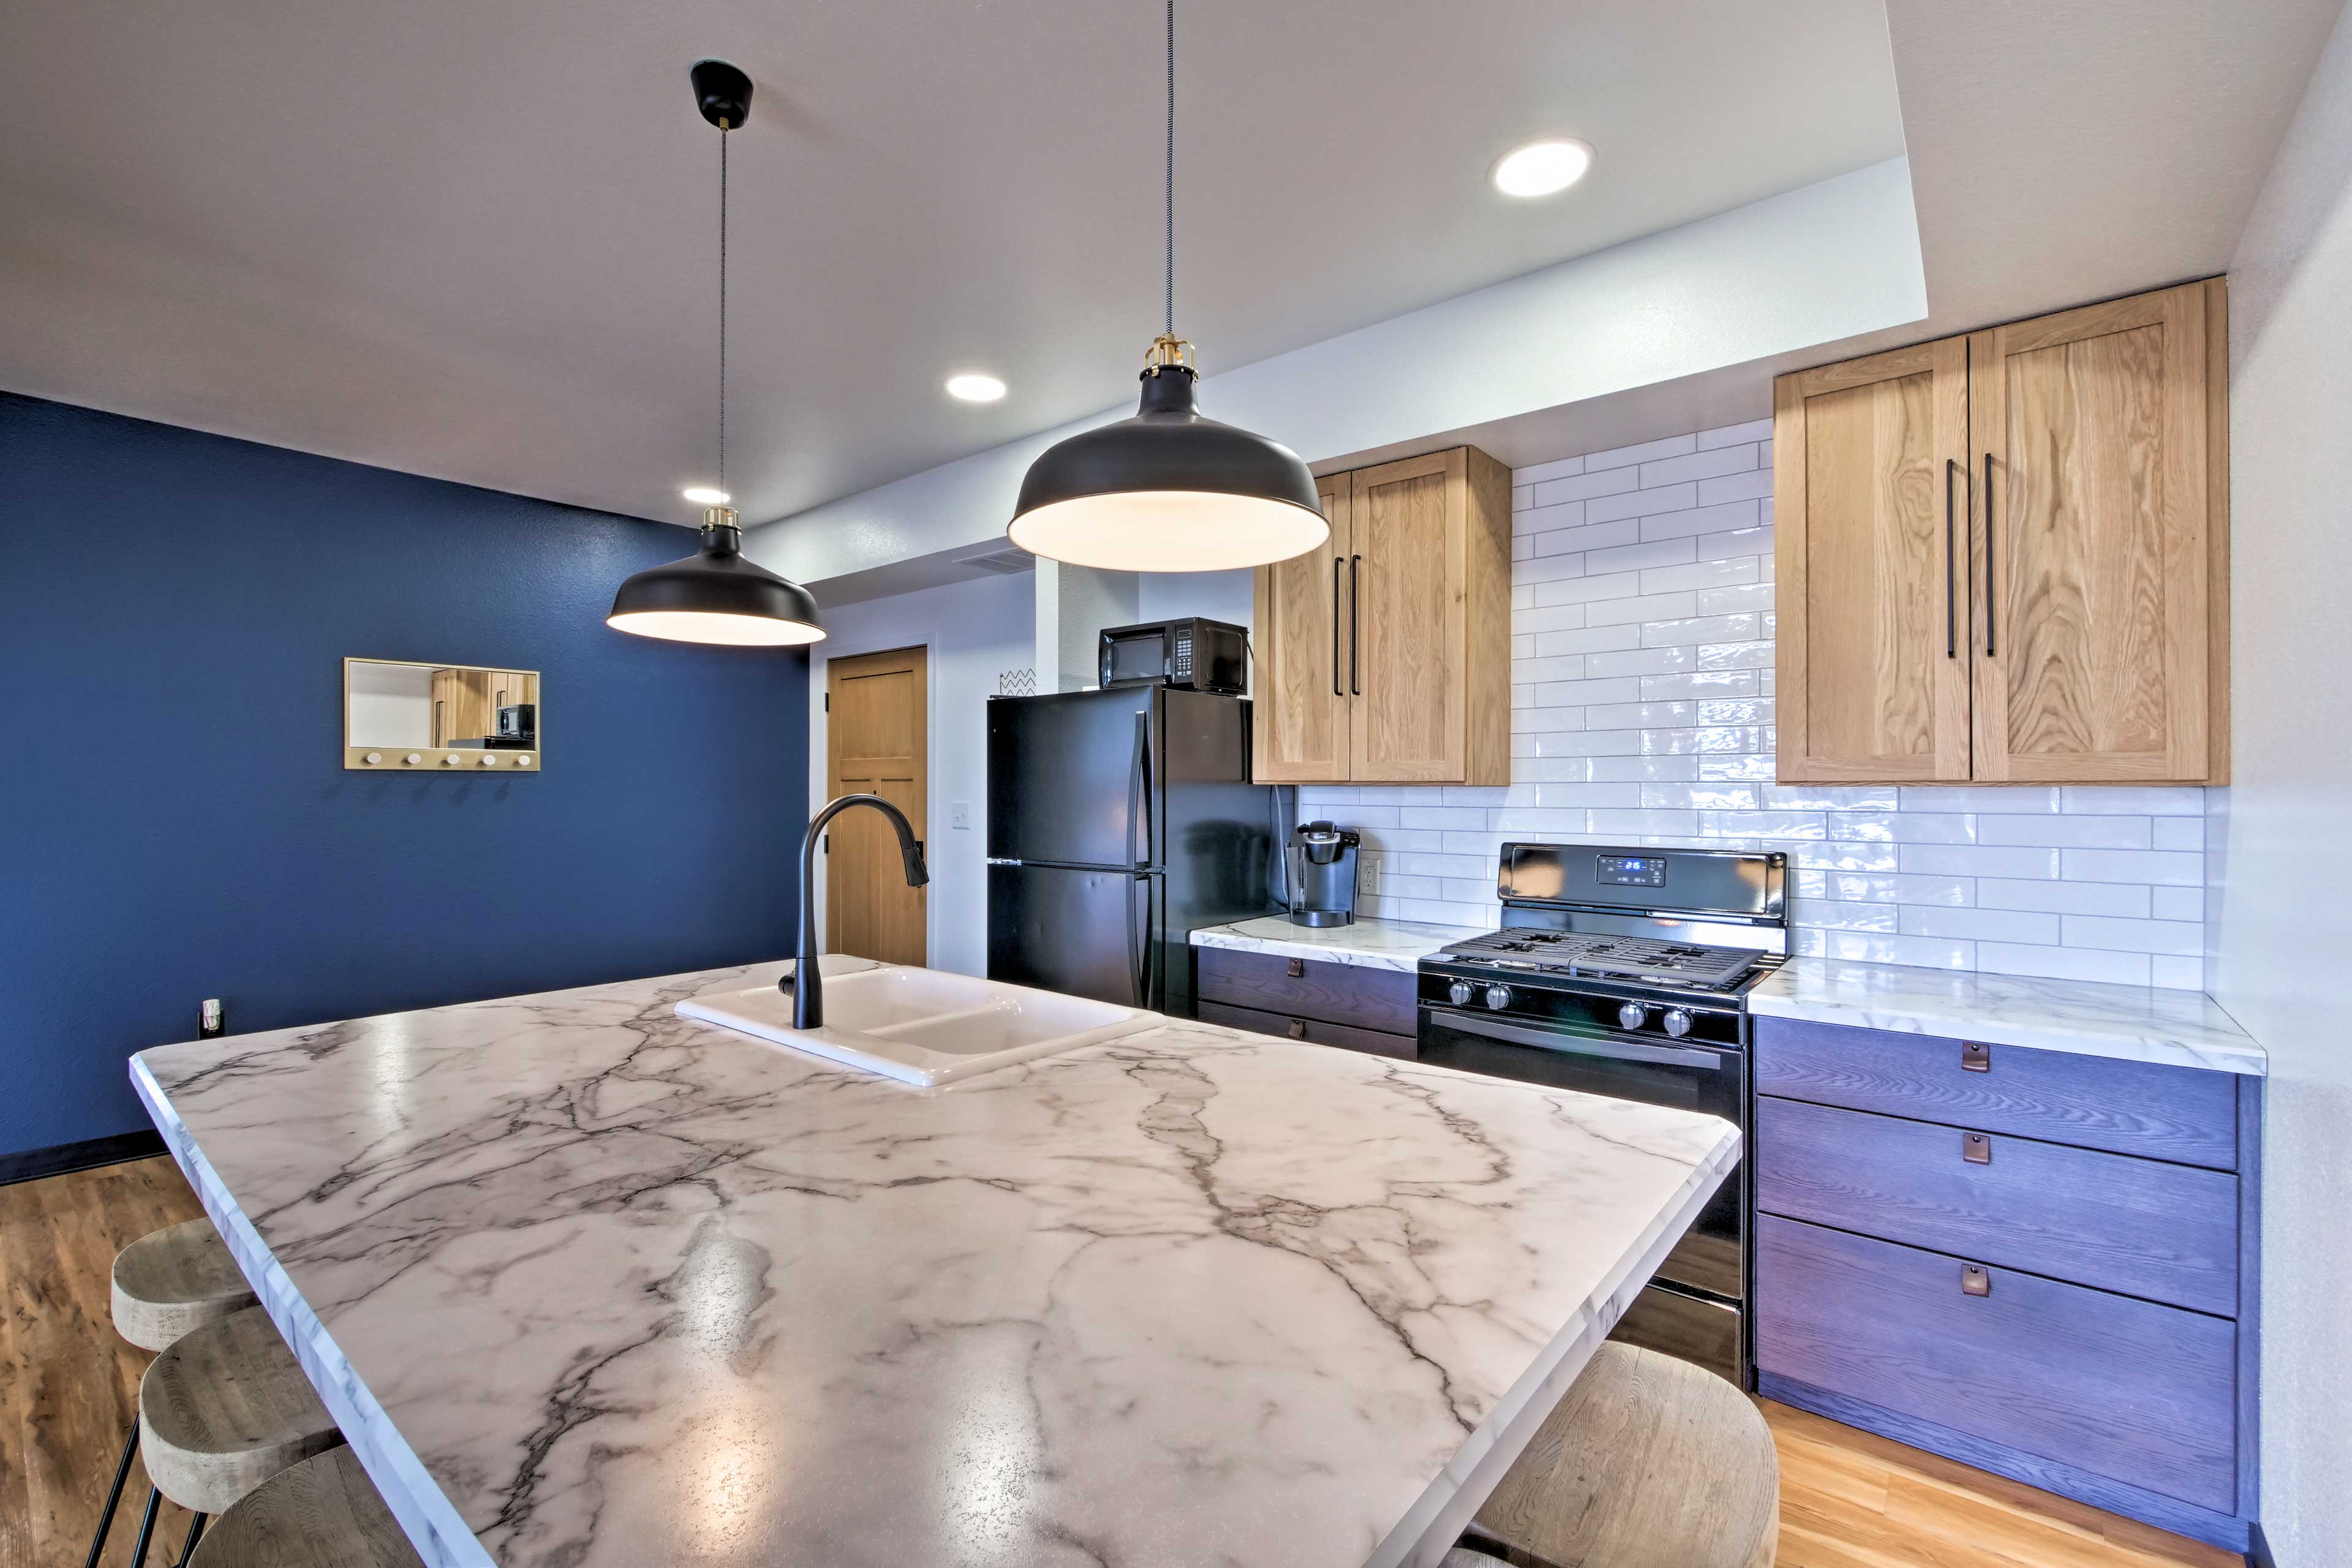 The well-equipped kitchen is complete with beautiful Formica countertops.